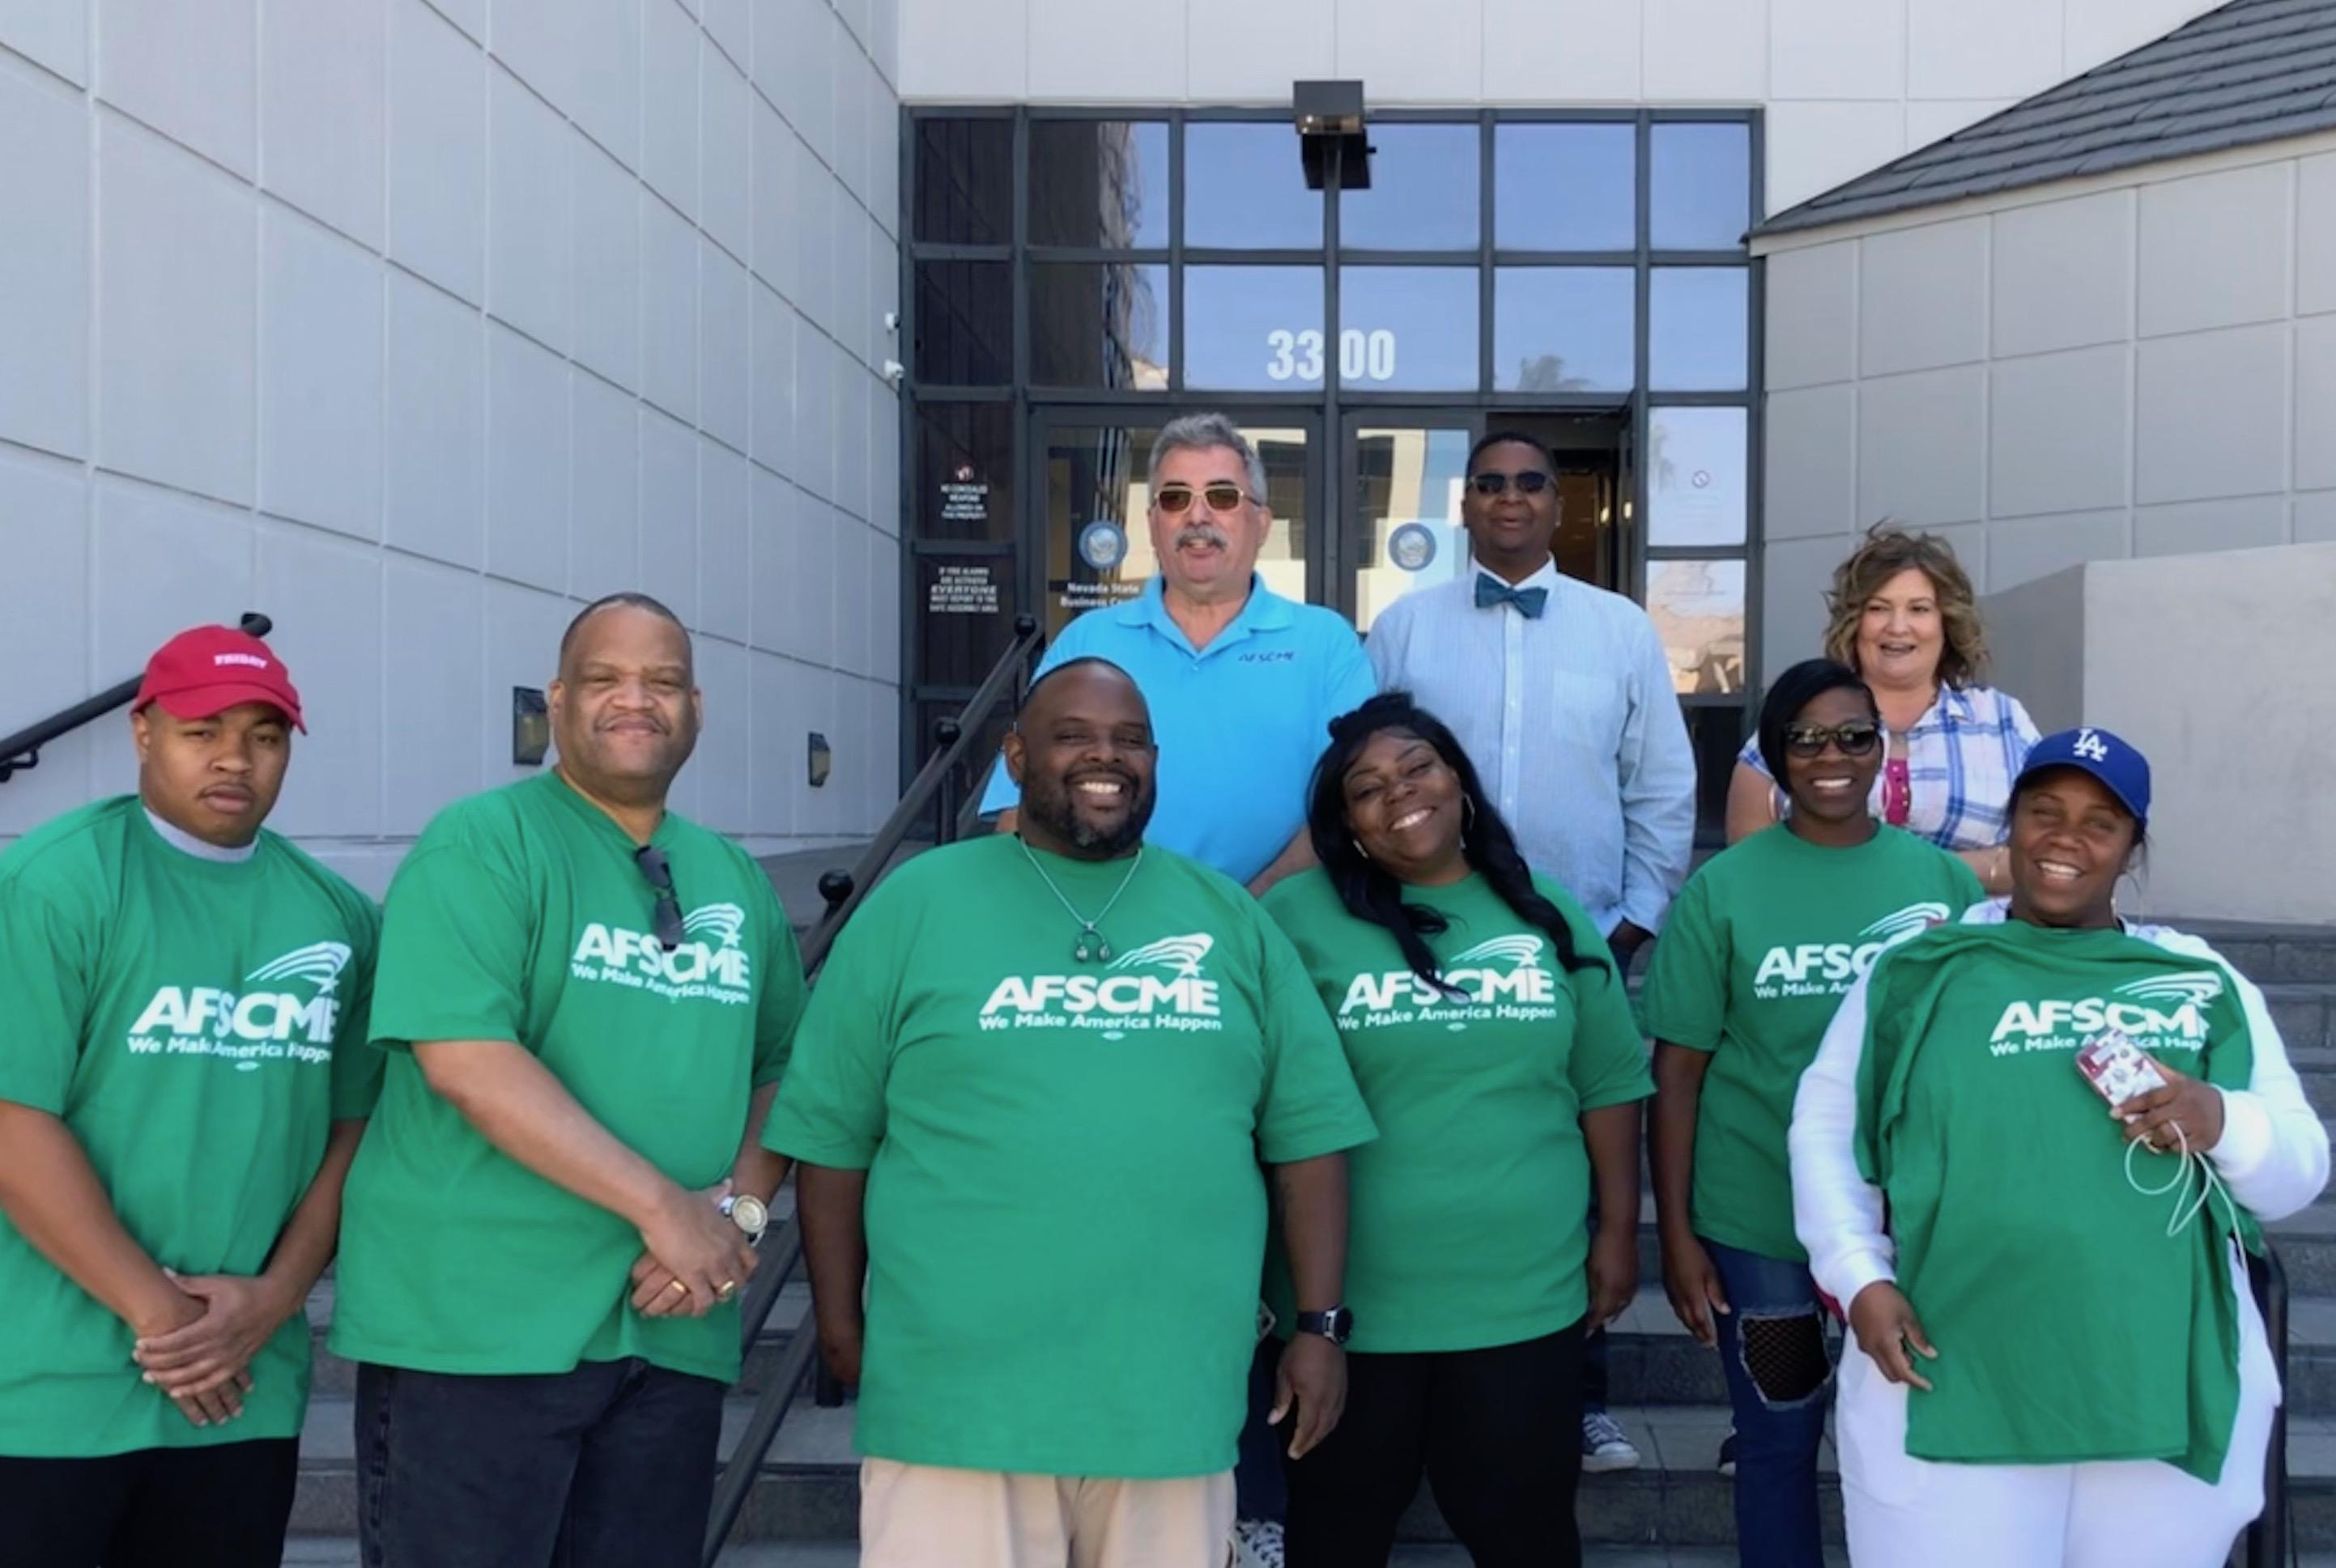 AFSCME Local 4041 health care support workers file for collective bargaining recognition